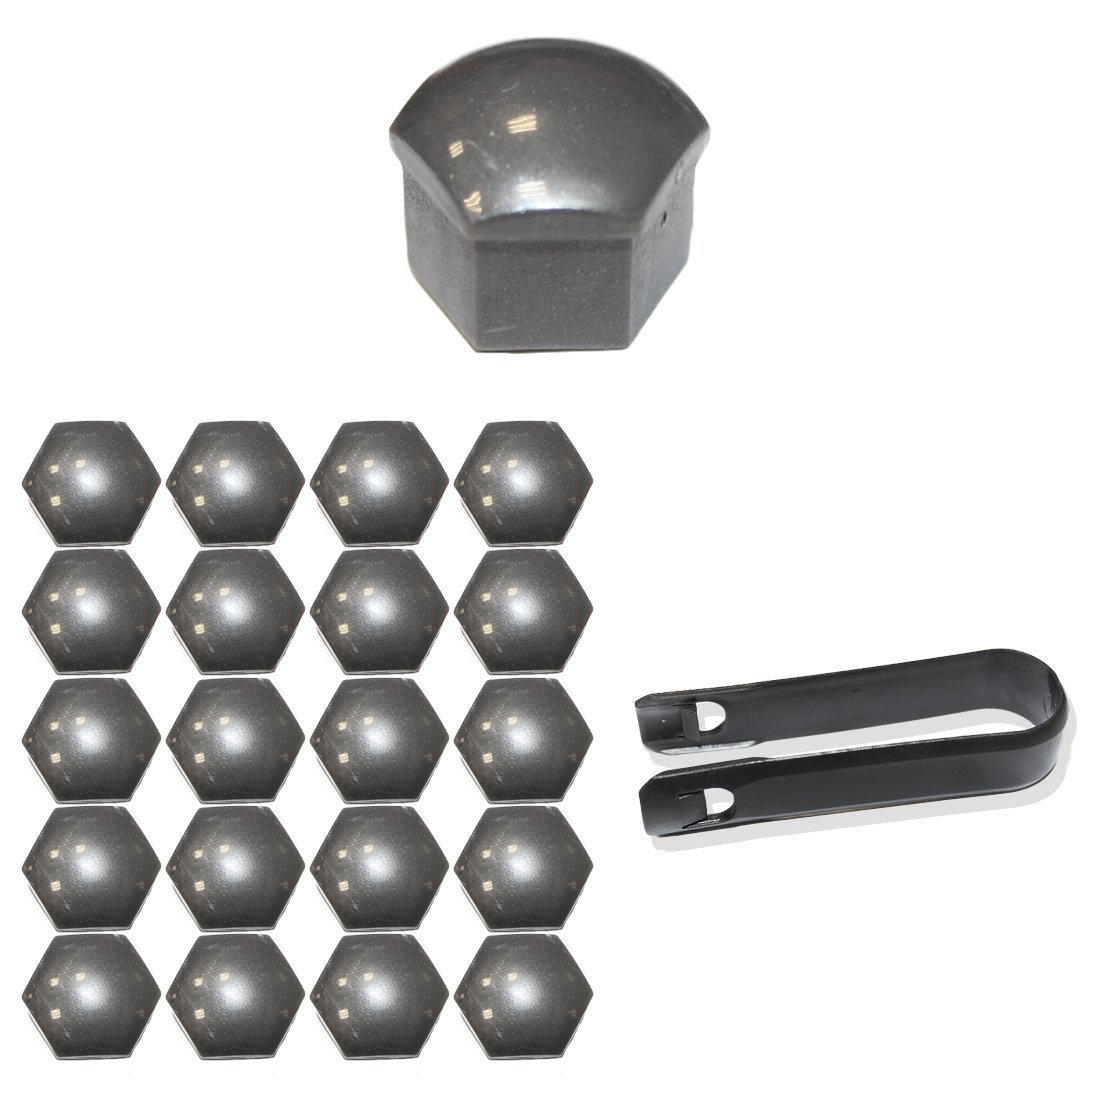 Tuqiang® 20x Caps Set Covers 17MM Wheel Nuts Caps Wheel Bolts Wheel Bolts Caps Including Puller Gray